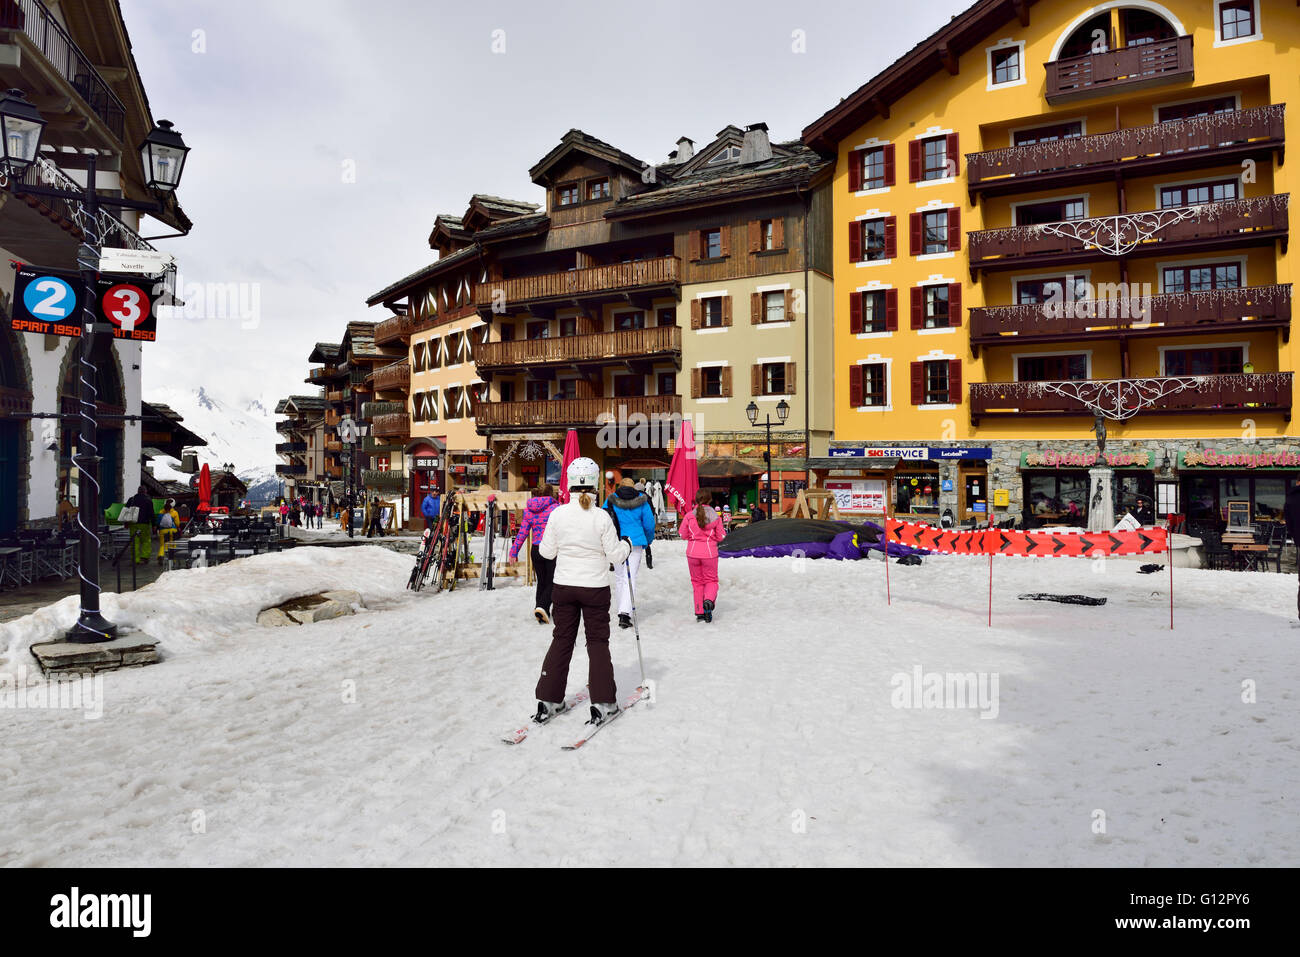 Skiing and walking into the French resort of Les Arcs 1950 in the Alps - Stock Image